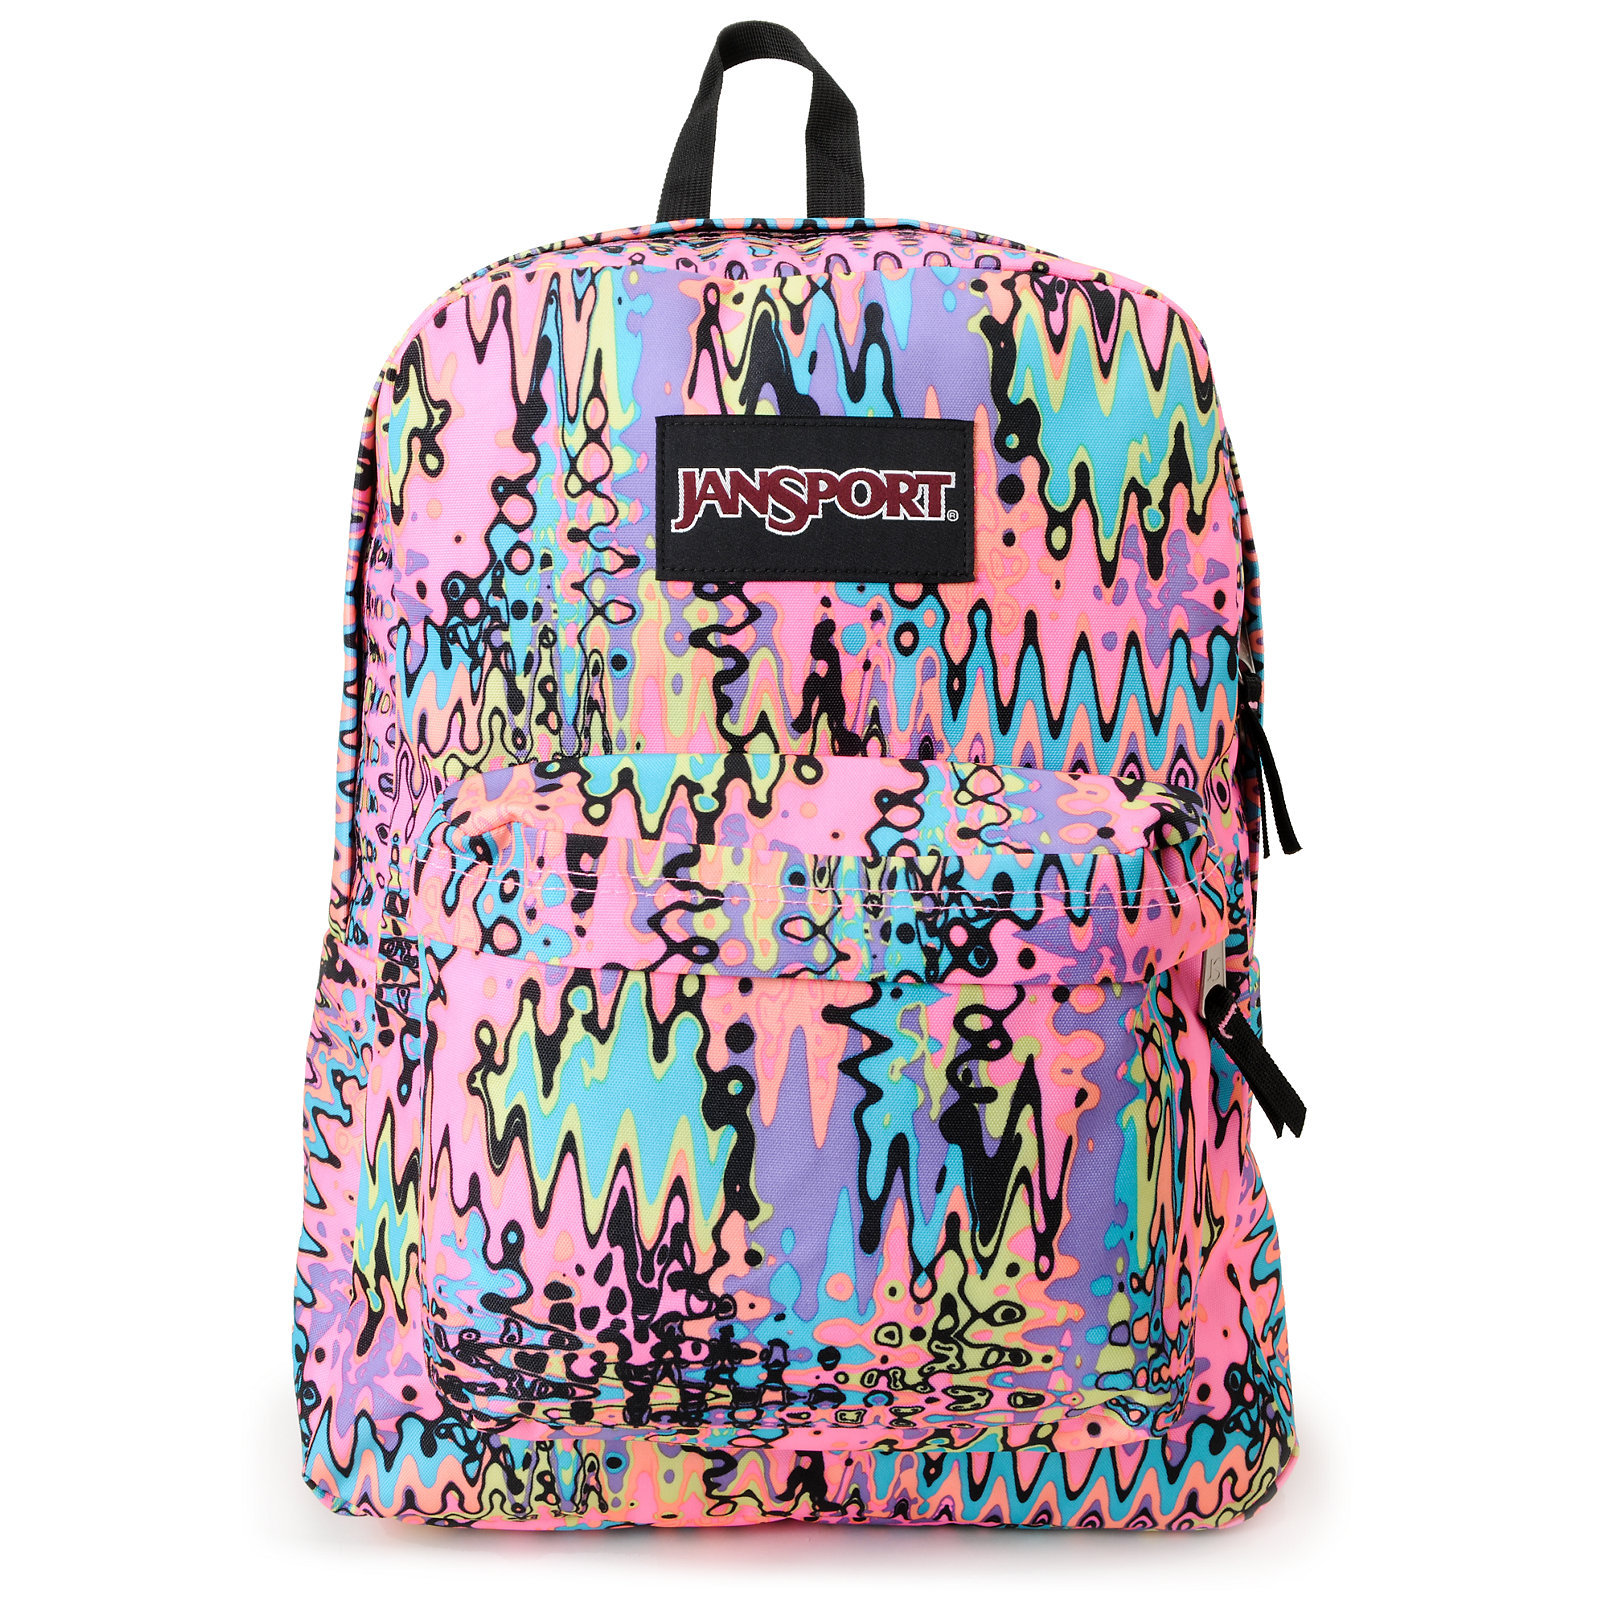 Jansport Backpacks For Girls z1PXmo4Y